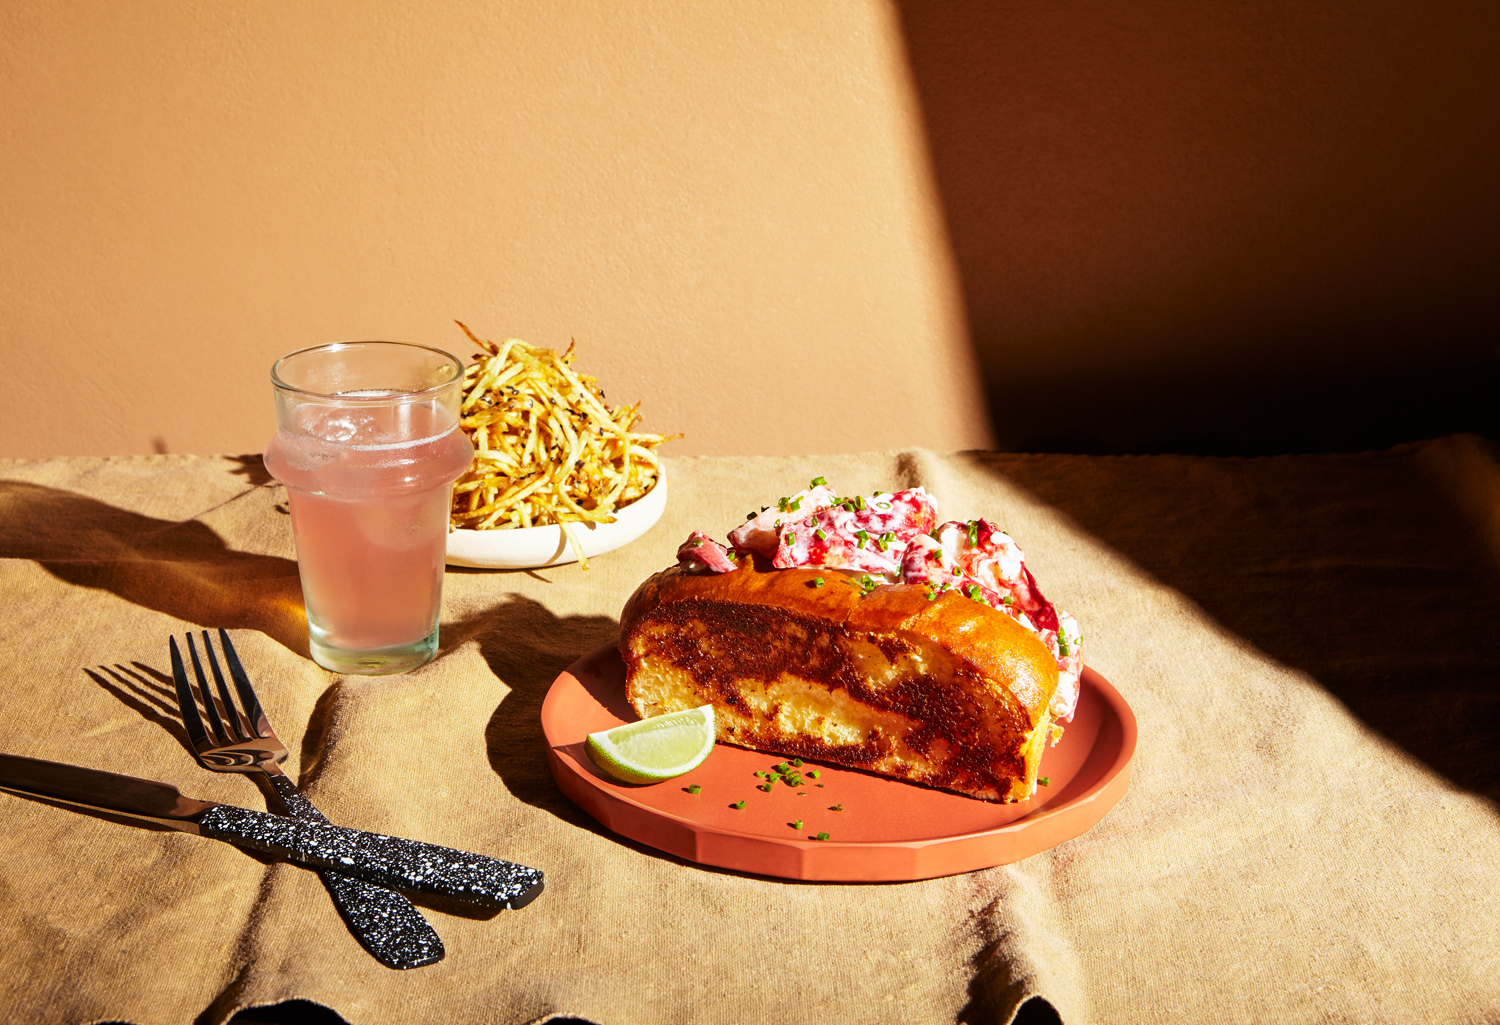 katie hammond photography buns and buns still life food lobster roll